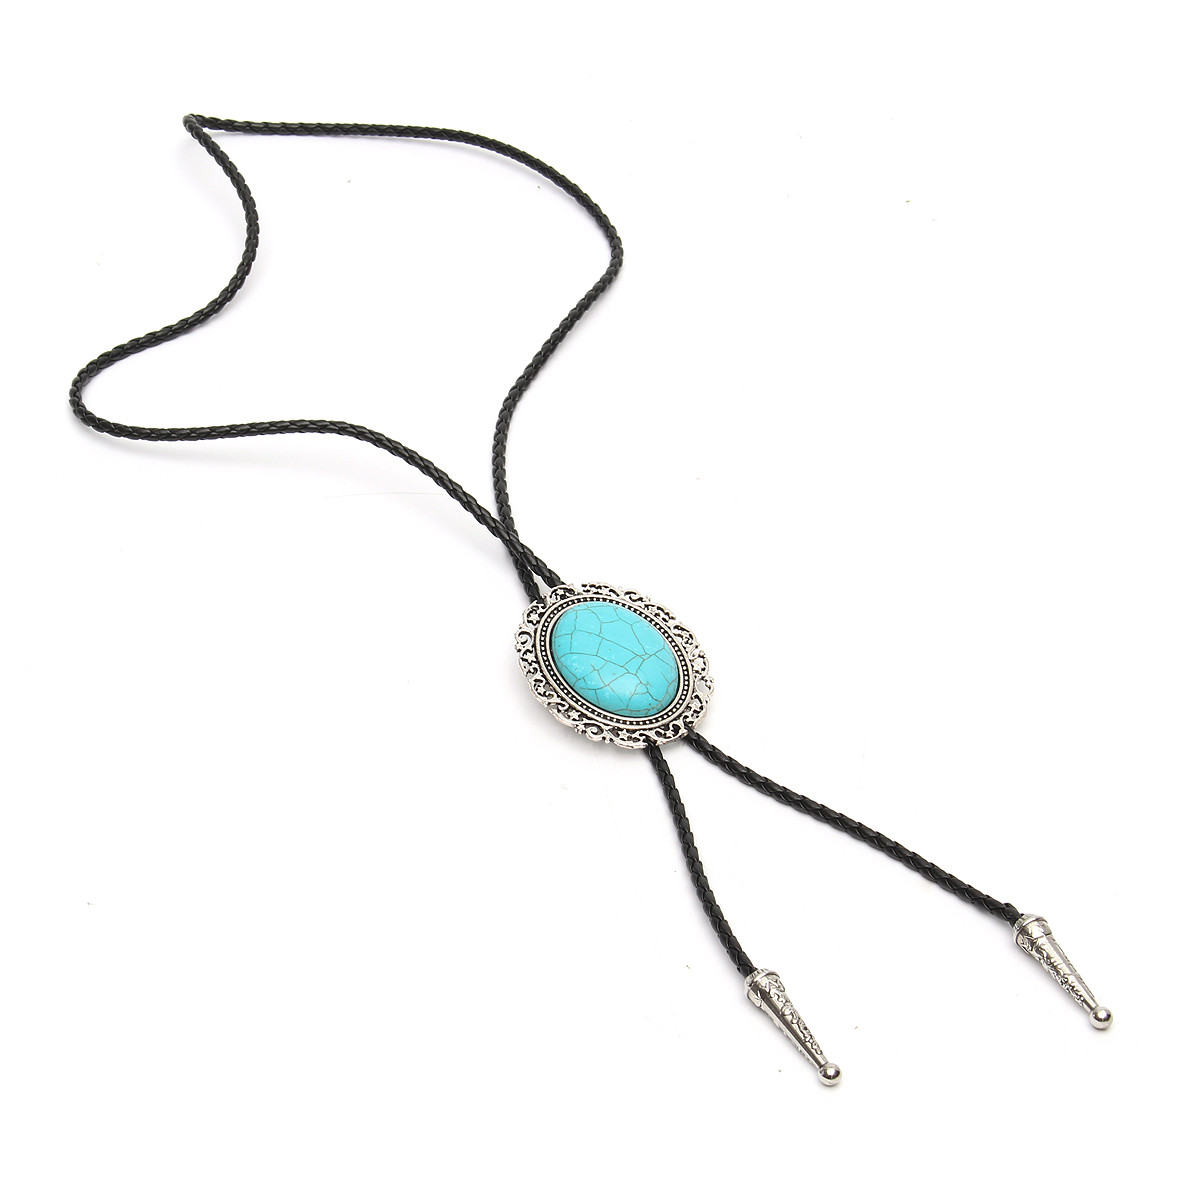 Natural Stone Vintage Bolo Tie For Male, Fashion Men's Necklace Retro Rodeo Horse Turquoise Necktie Men Western Cowboy Bolo Ties